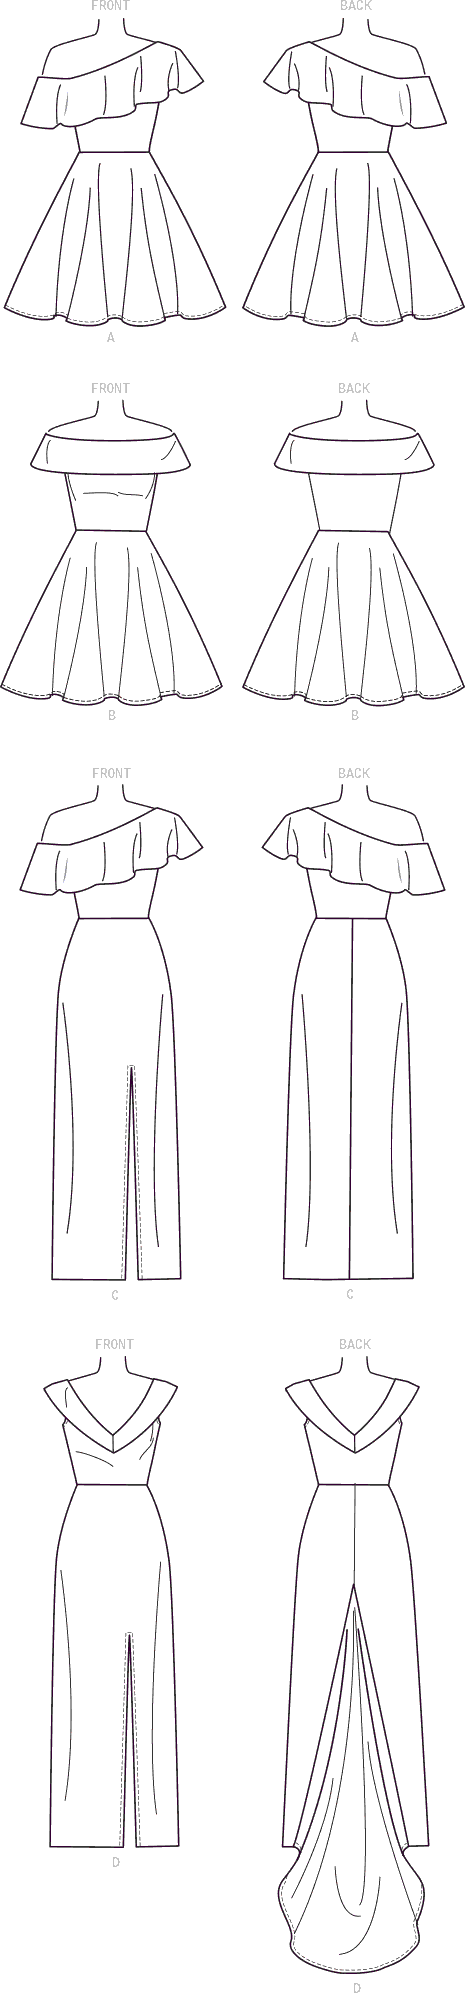 McCall's Pattern M7683 Misses Miss Petite Dresses with Shoulder and Skirt Variations 7683 Line Art From Patternsandplains.com